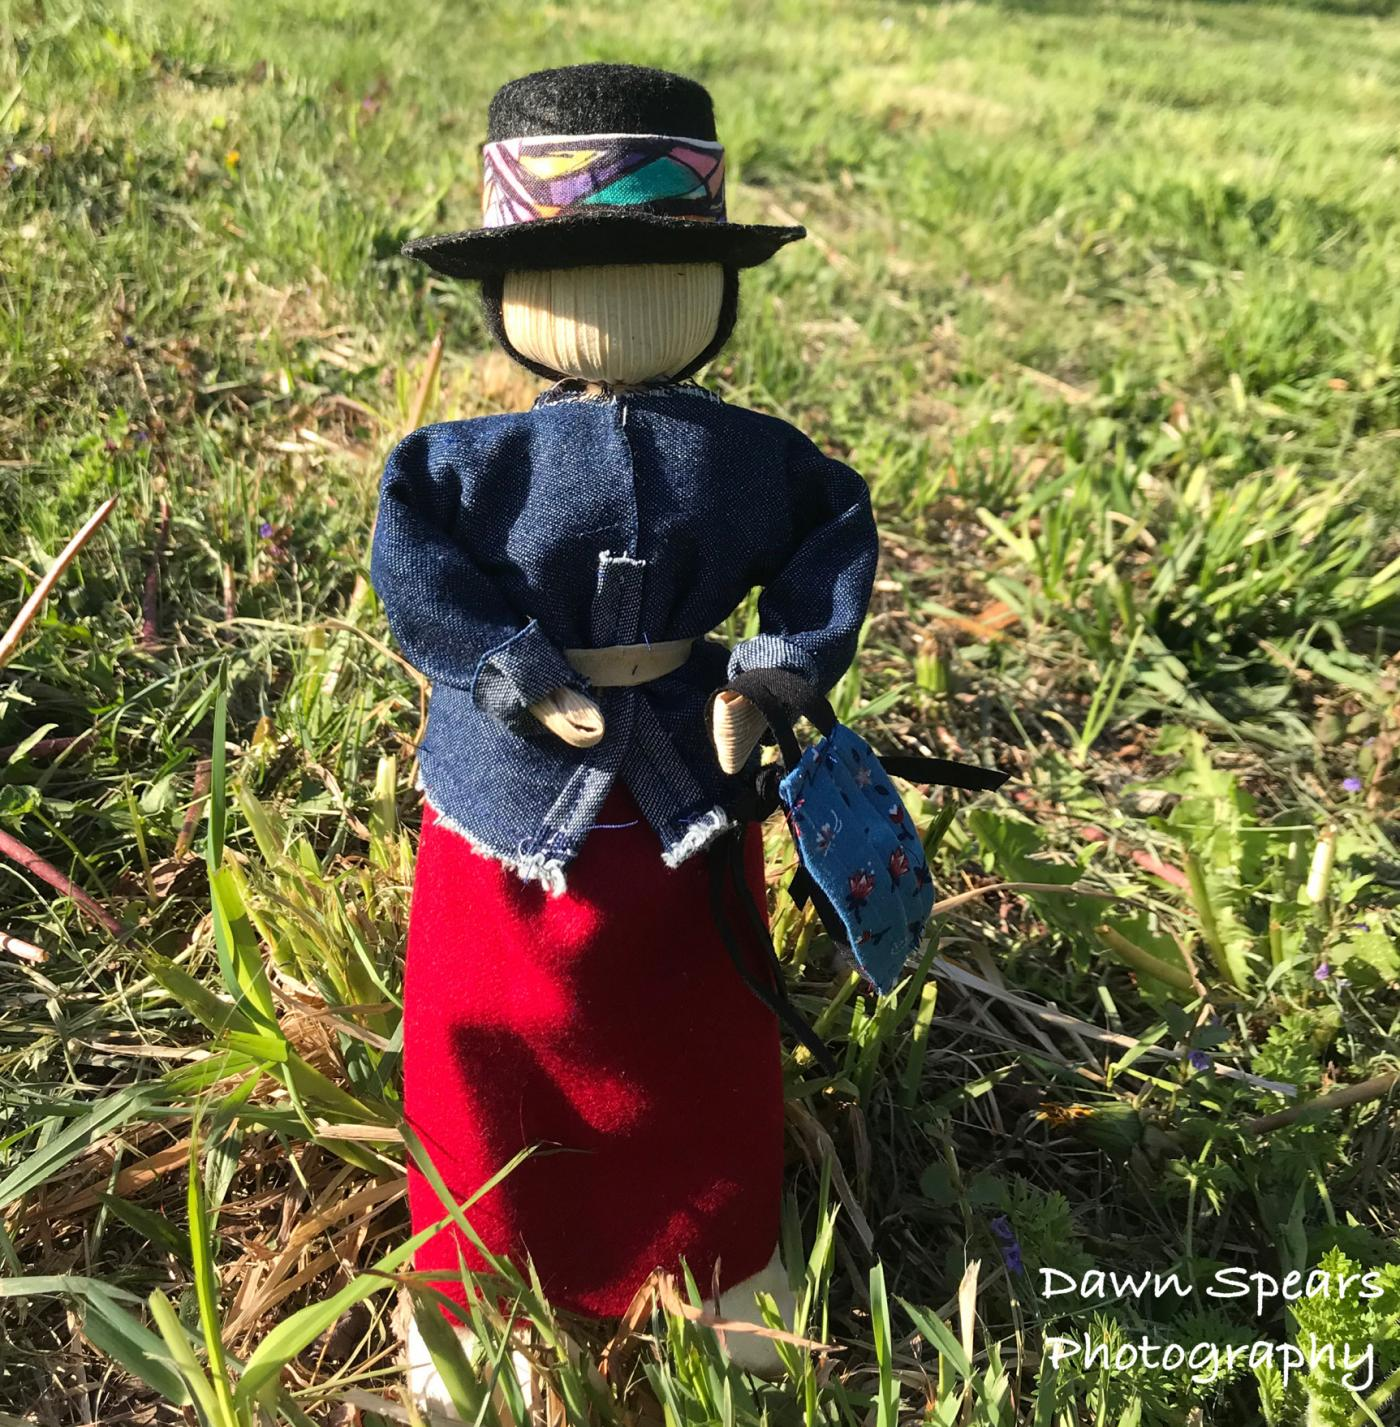 Corn husk doll dressed in black hat with colorful band, denim belted top, and long red skirt, standing on a sunny lawn.